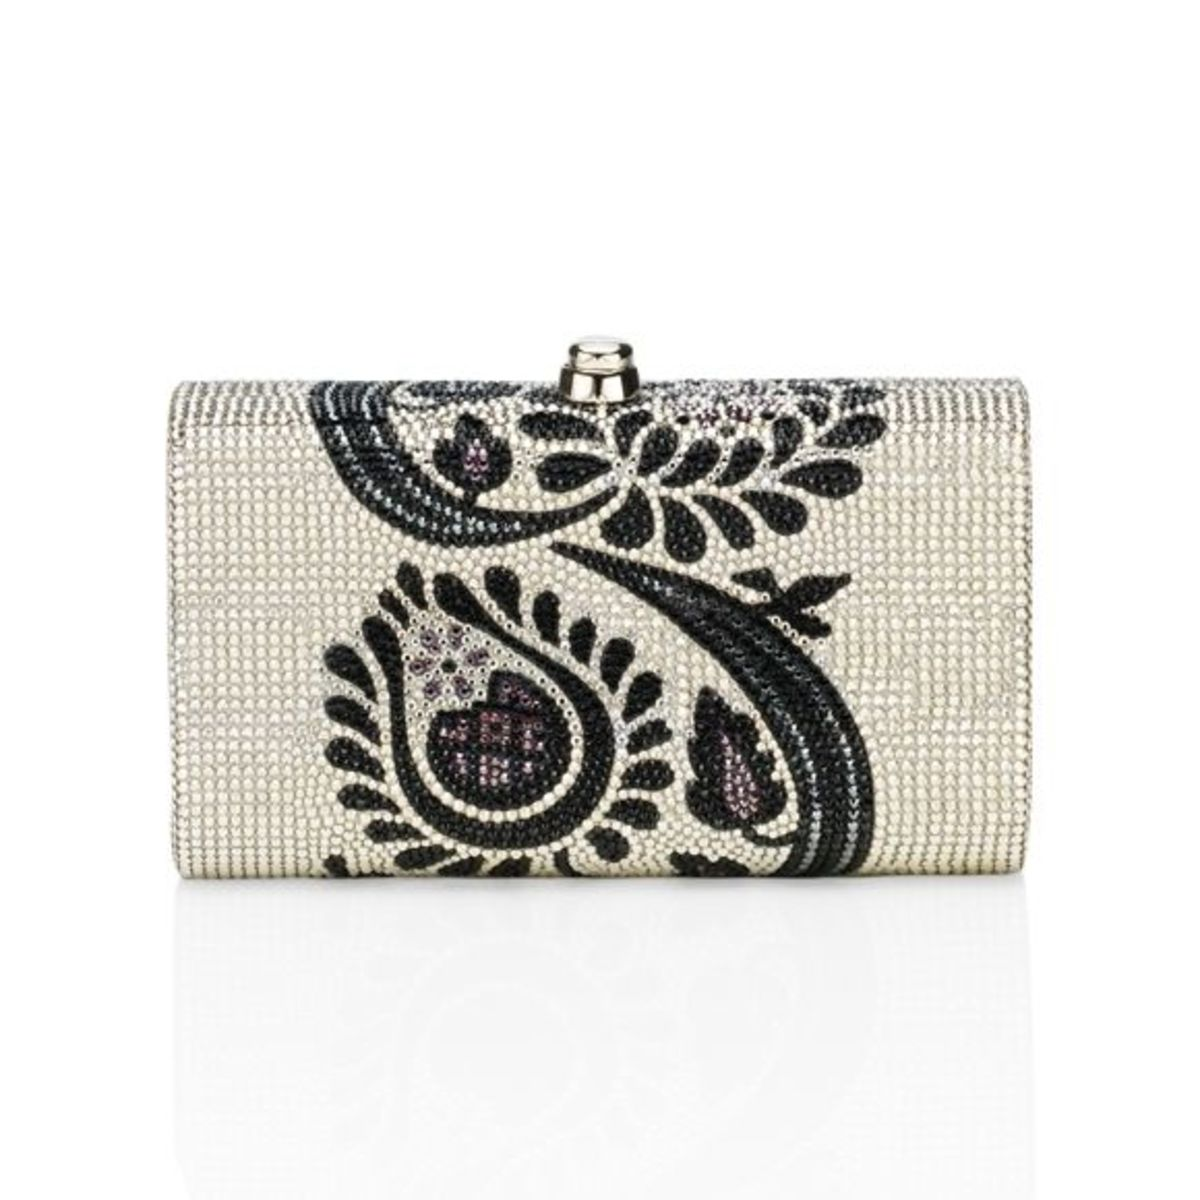 """FIELD FLOWERSPrice: $2,995Curved minaudière featuring a dynamic silhouetted floral design against a field of silver. 19"""" chain."""